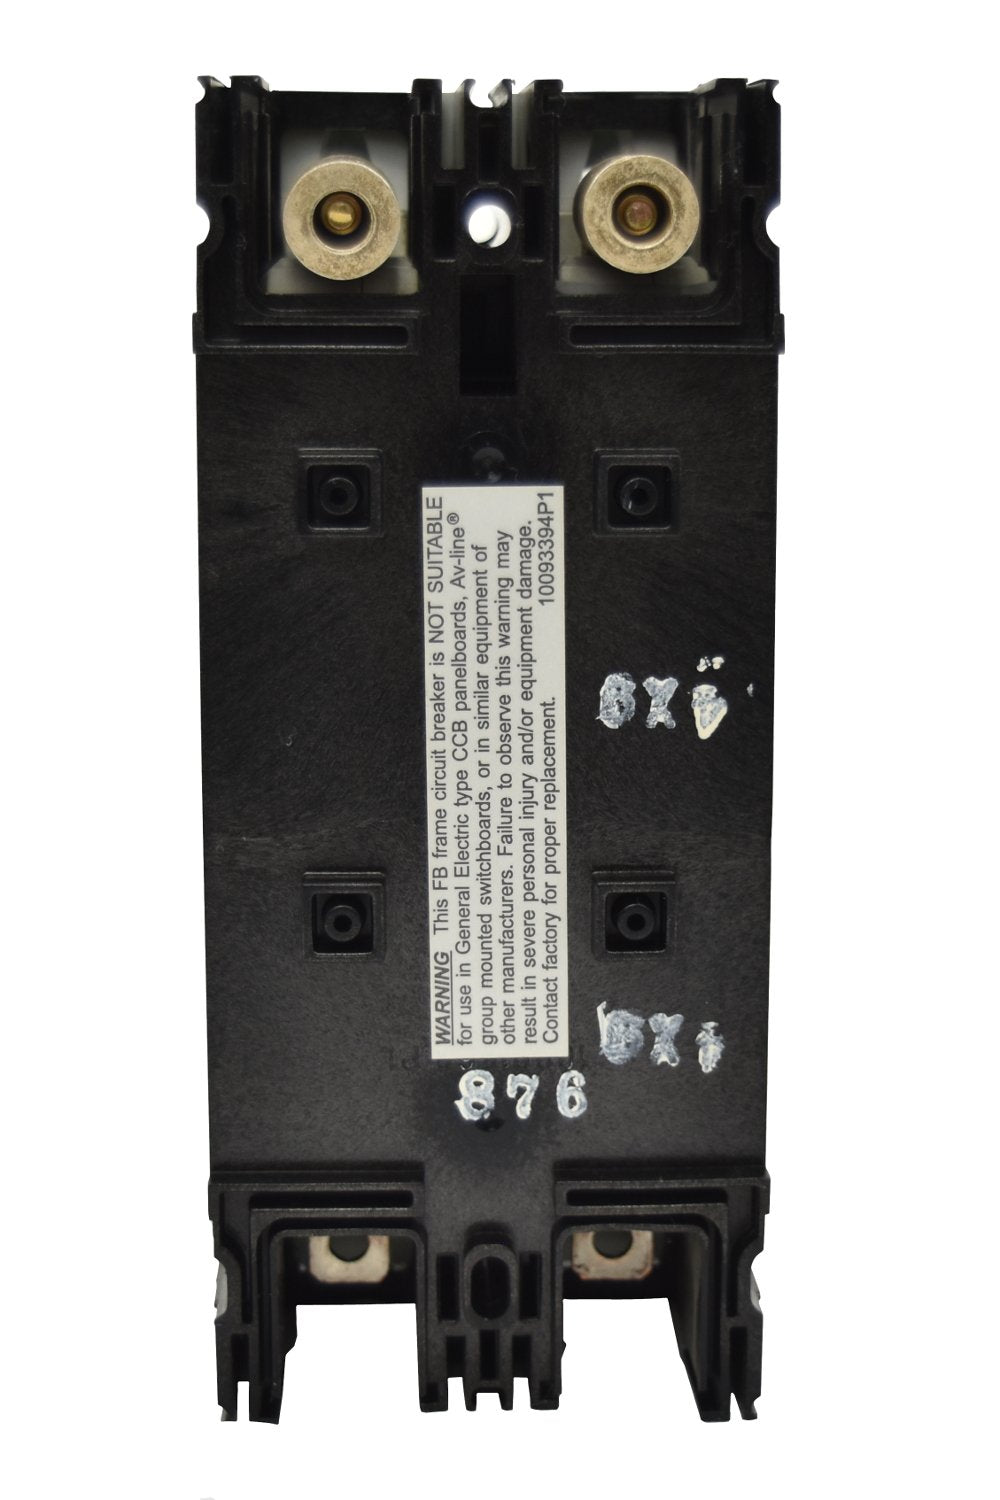 General Electric Circuit Breaker Replacement Zinsco Breakers New Used And Obsolete Breakerconnection Te Molded Case Denver 1000x1500